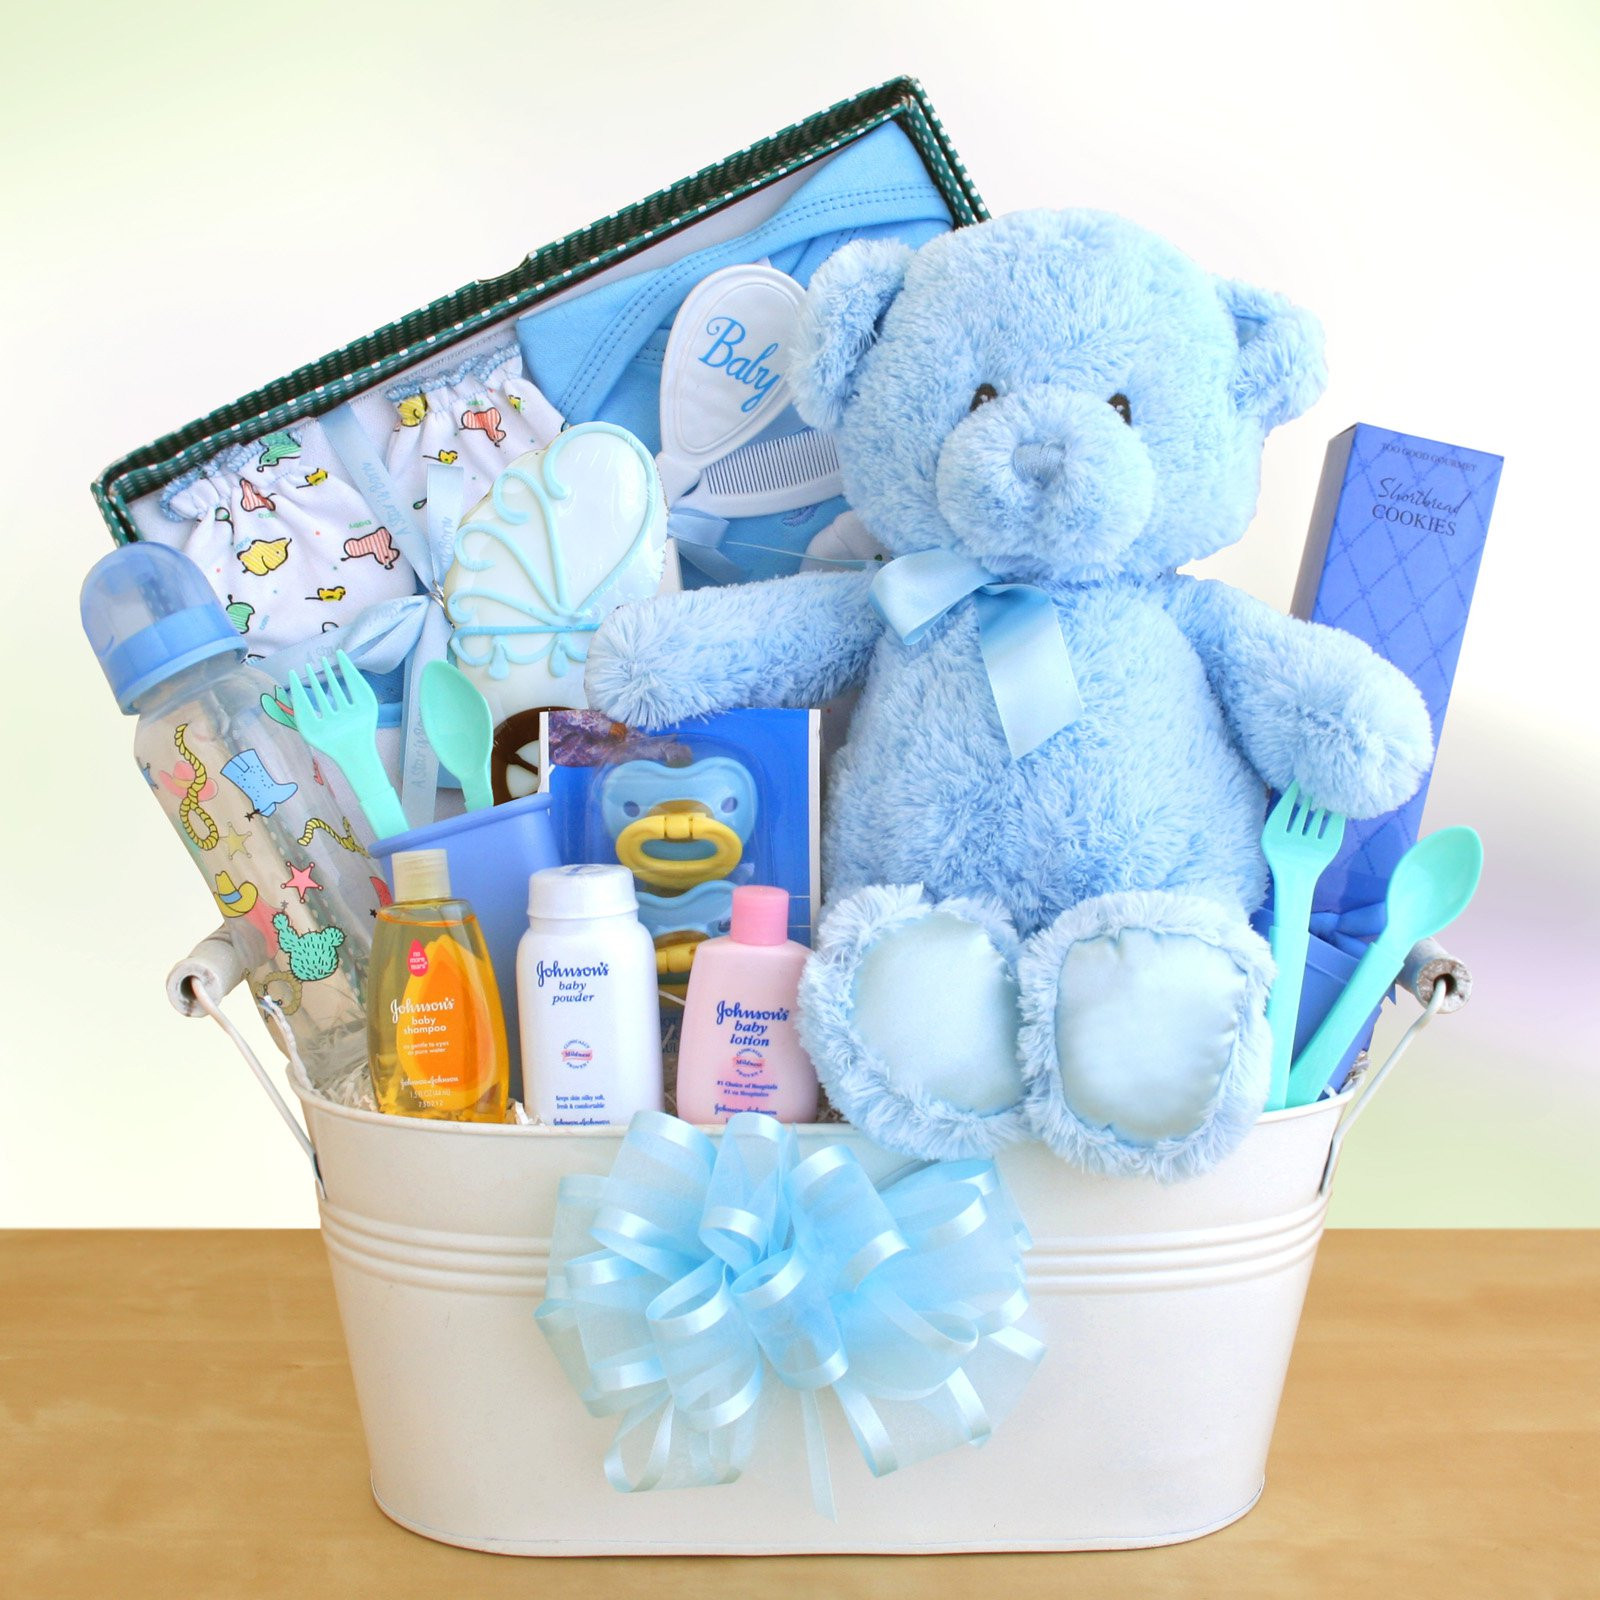 Best ideas about Baby Boy Baby Shower Gift Ideas . Save or Pin New Arrival Baby Boy Gift Basket Gift Baskets by Now.